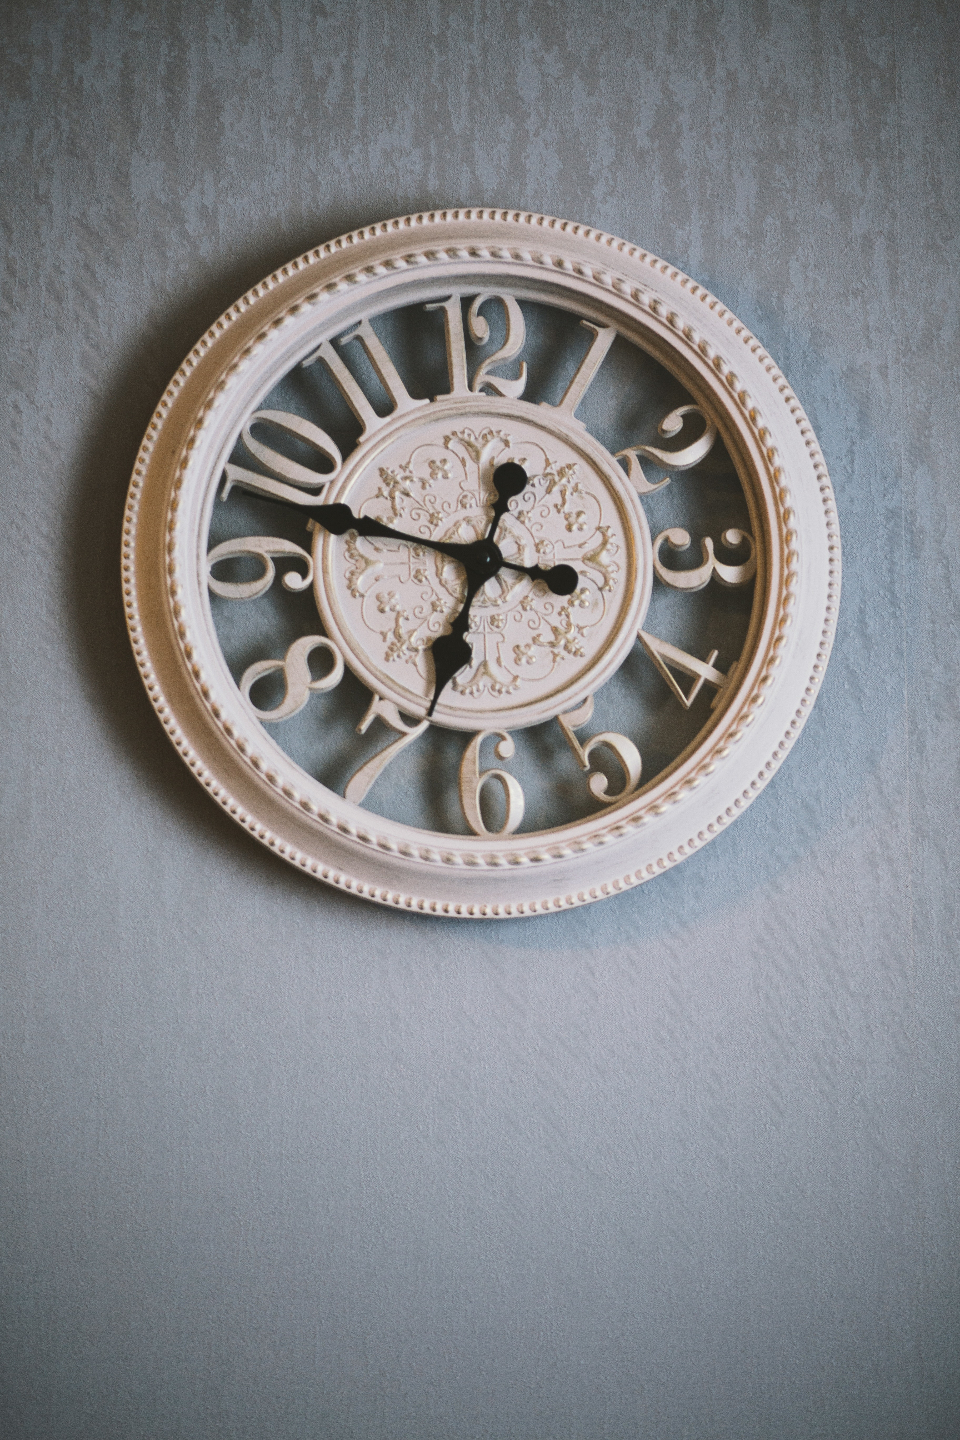 contemporay wall clock time antique hands retro furniture style